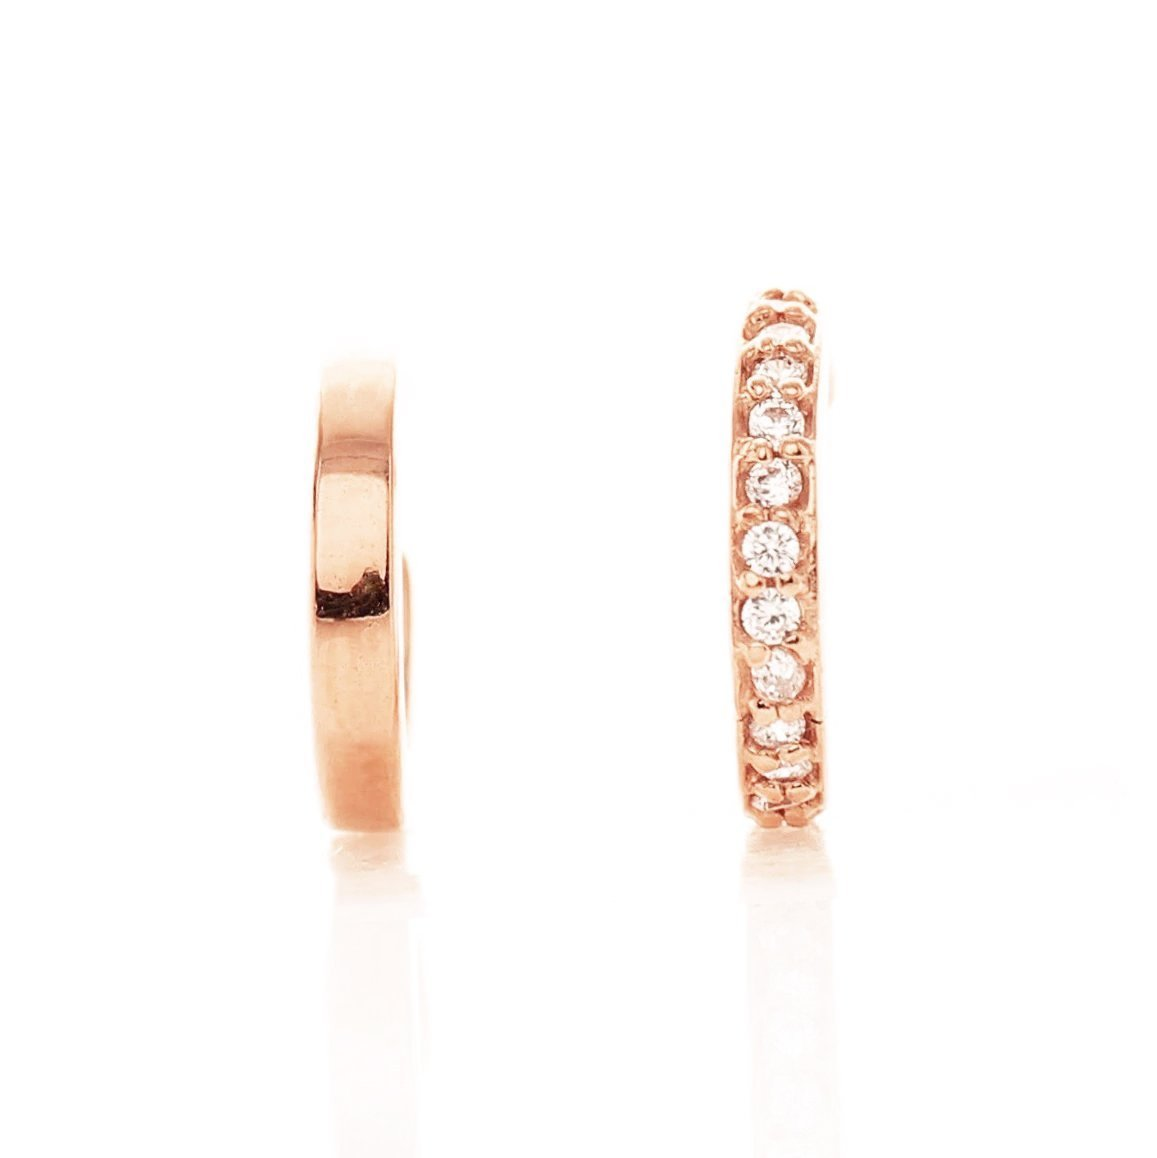 MINI DREAM STARDUST EAR CUFF SET - CUBIC ZIRCONIA & ROSE GOLD - LIMITED EDITION - SO PRETTY CARA COTTER